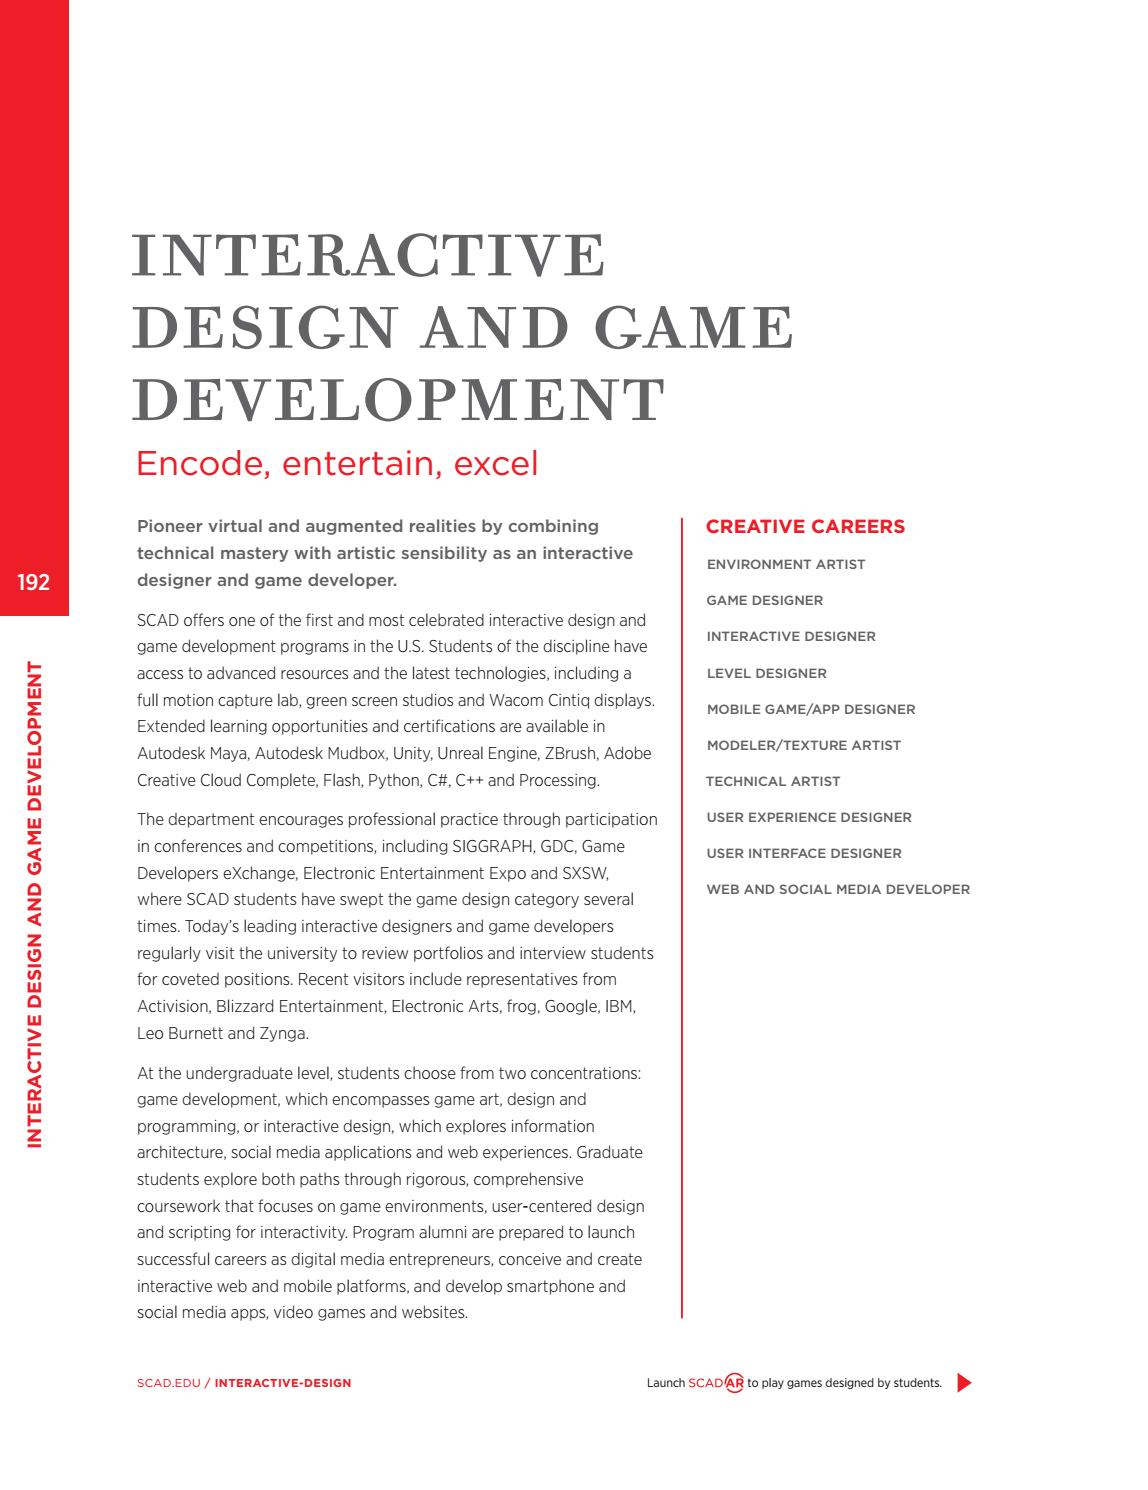 SCAD Academic Catalog By SCAD Issuu - Advanced game design with flash